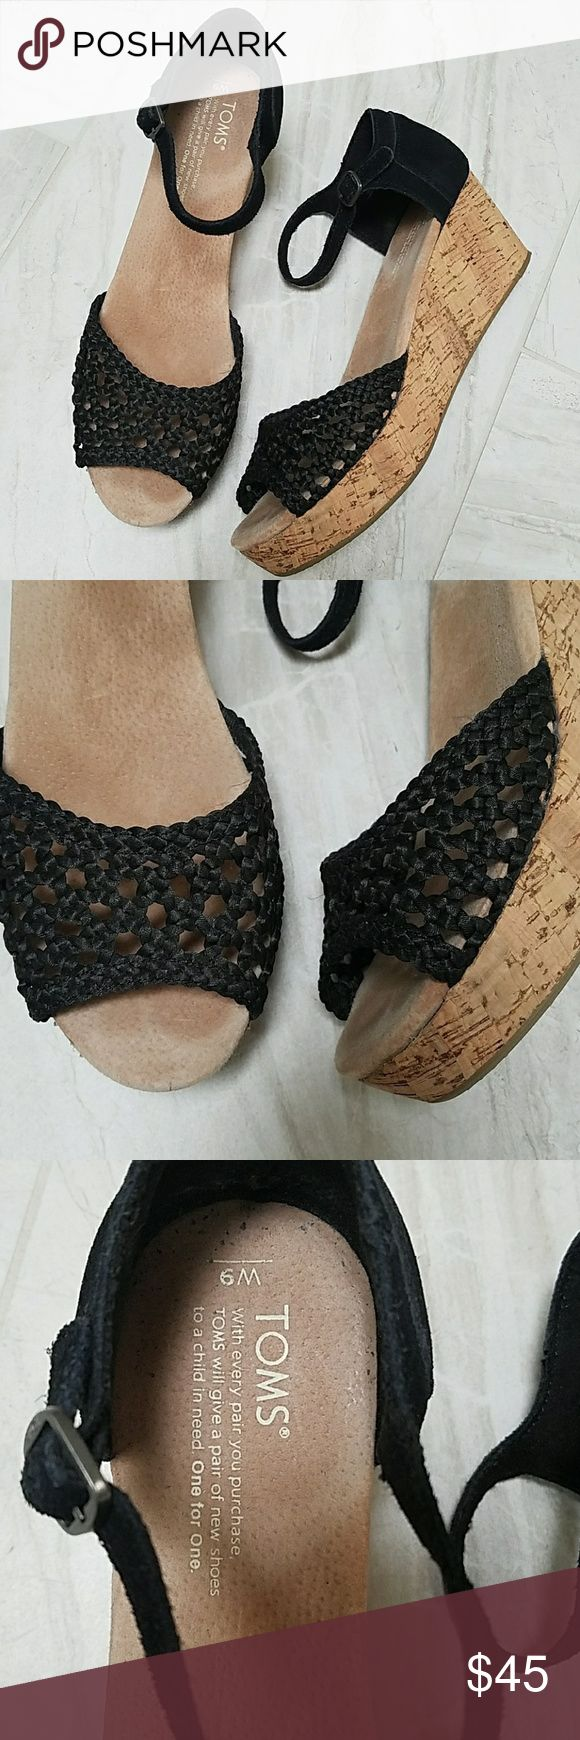 TOMS black wedges Reduced price  Super cute Toms wedges in like new condition. Size 9 toms Shoes